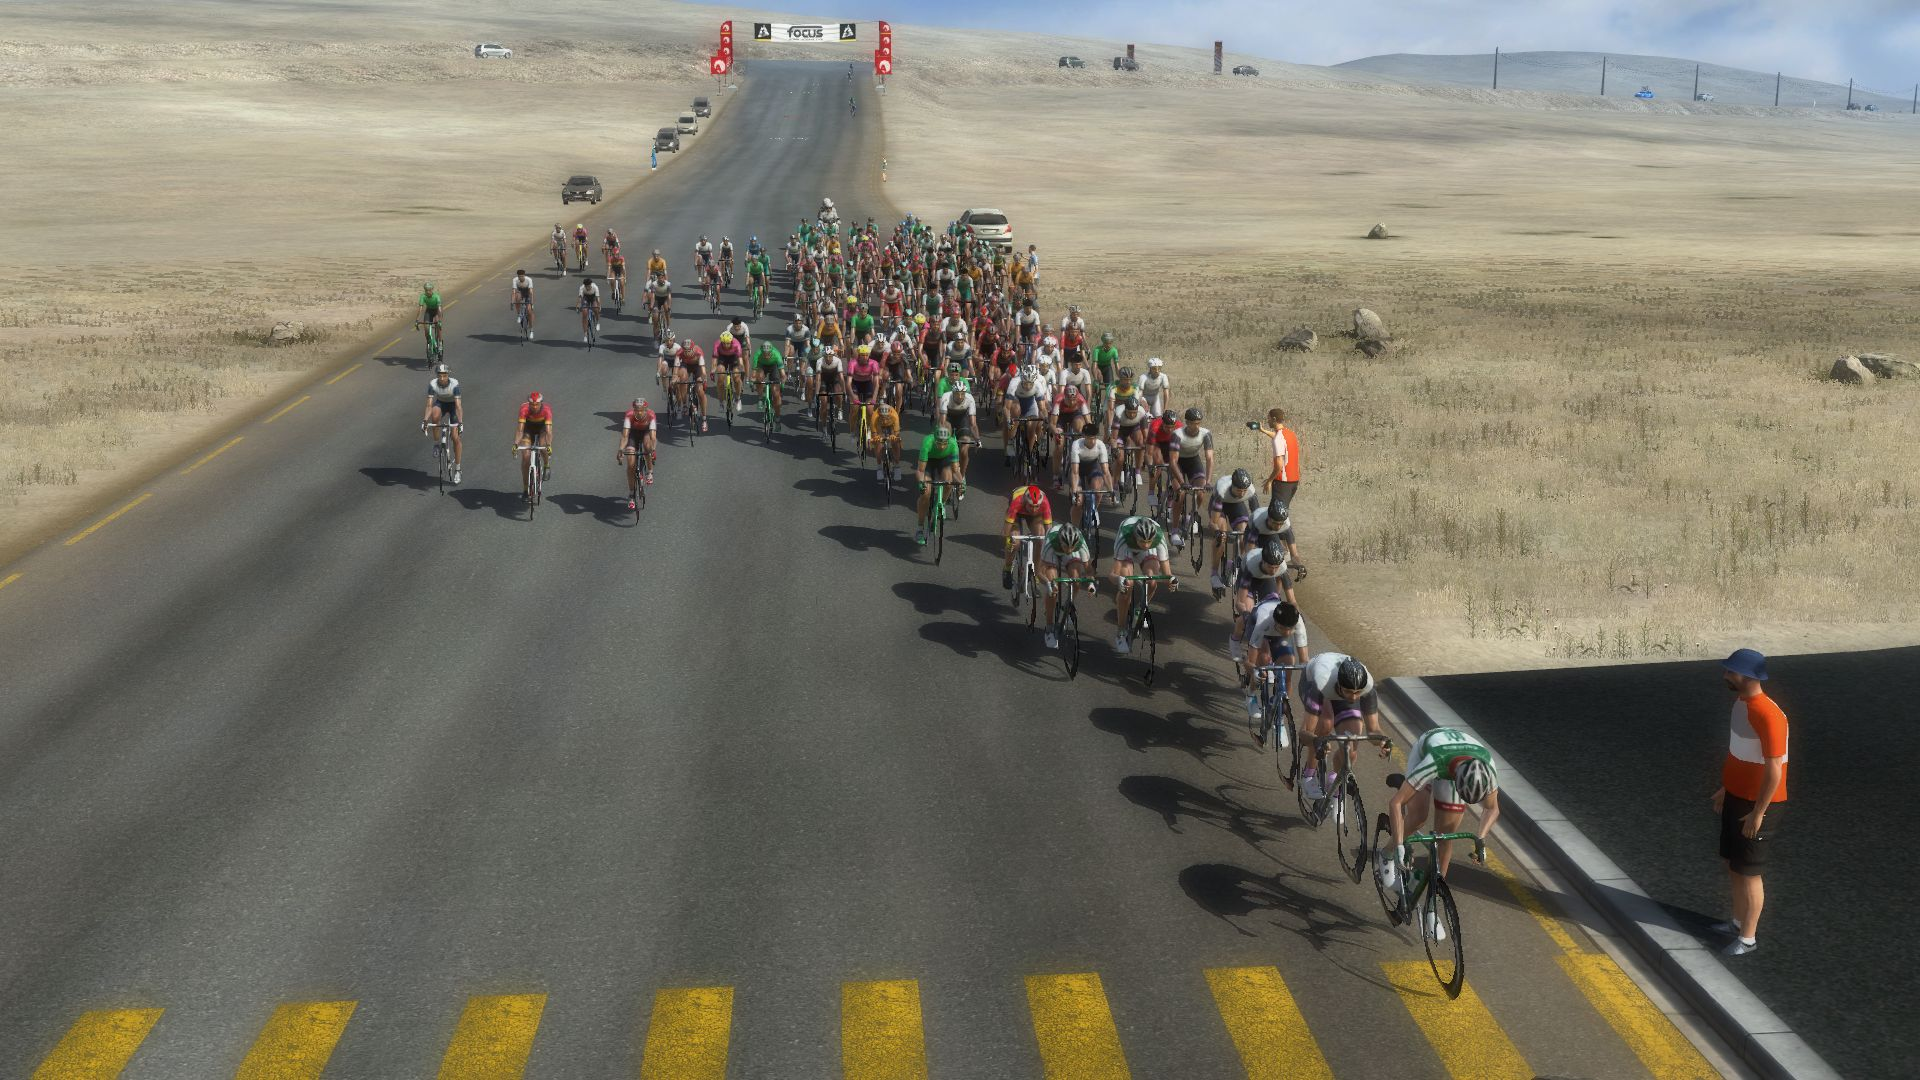 pcmdaily.com/images/mg/2019/Races/C2HC/Eritrea/TOES1%2014.jpg